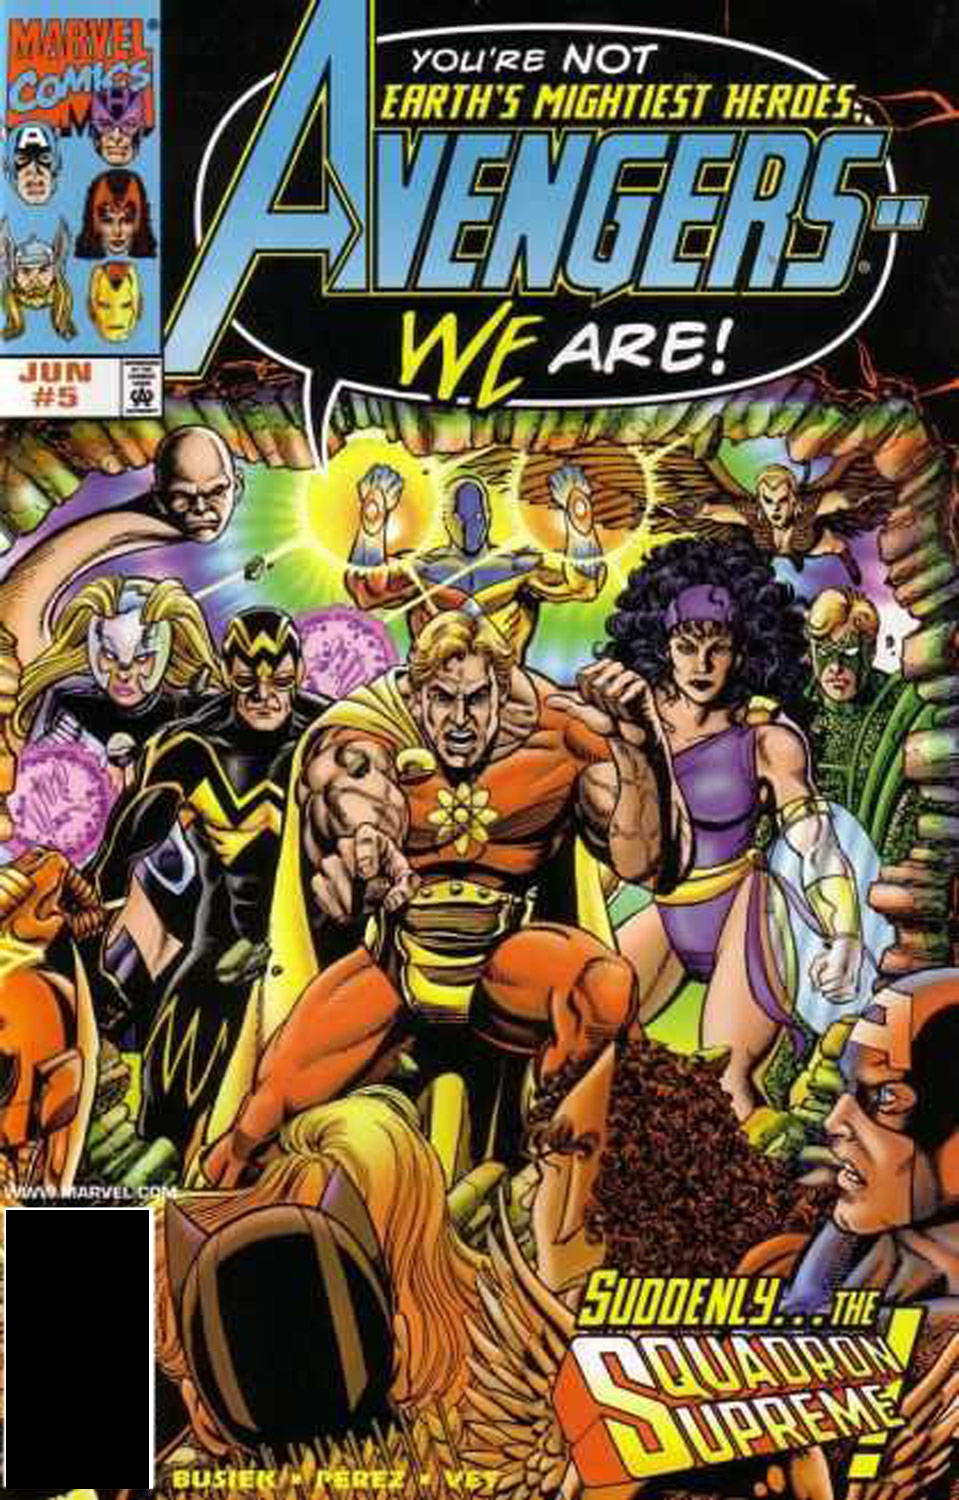 Read online Avengers (1998) comic -  Issue #5 - 1